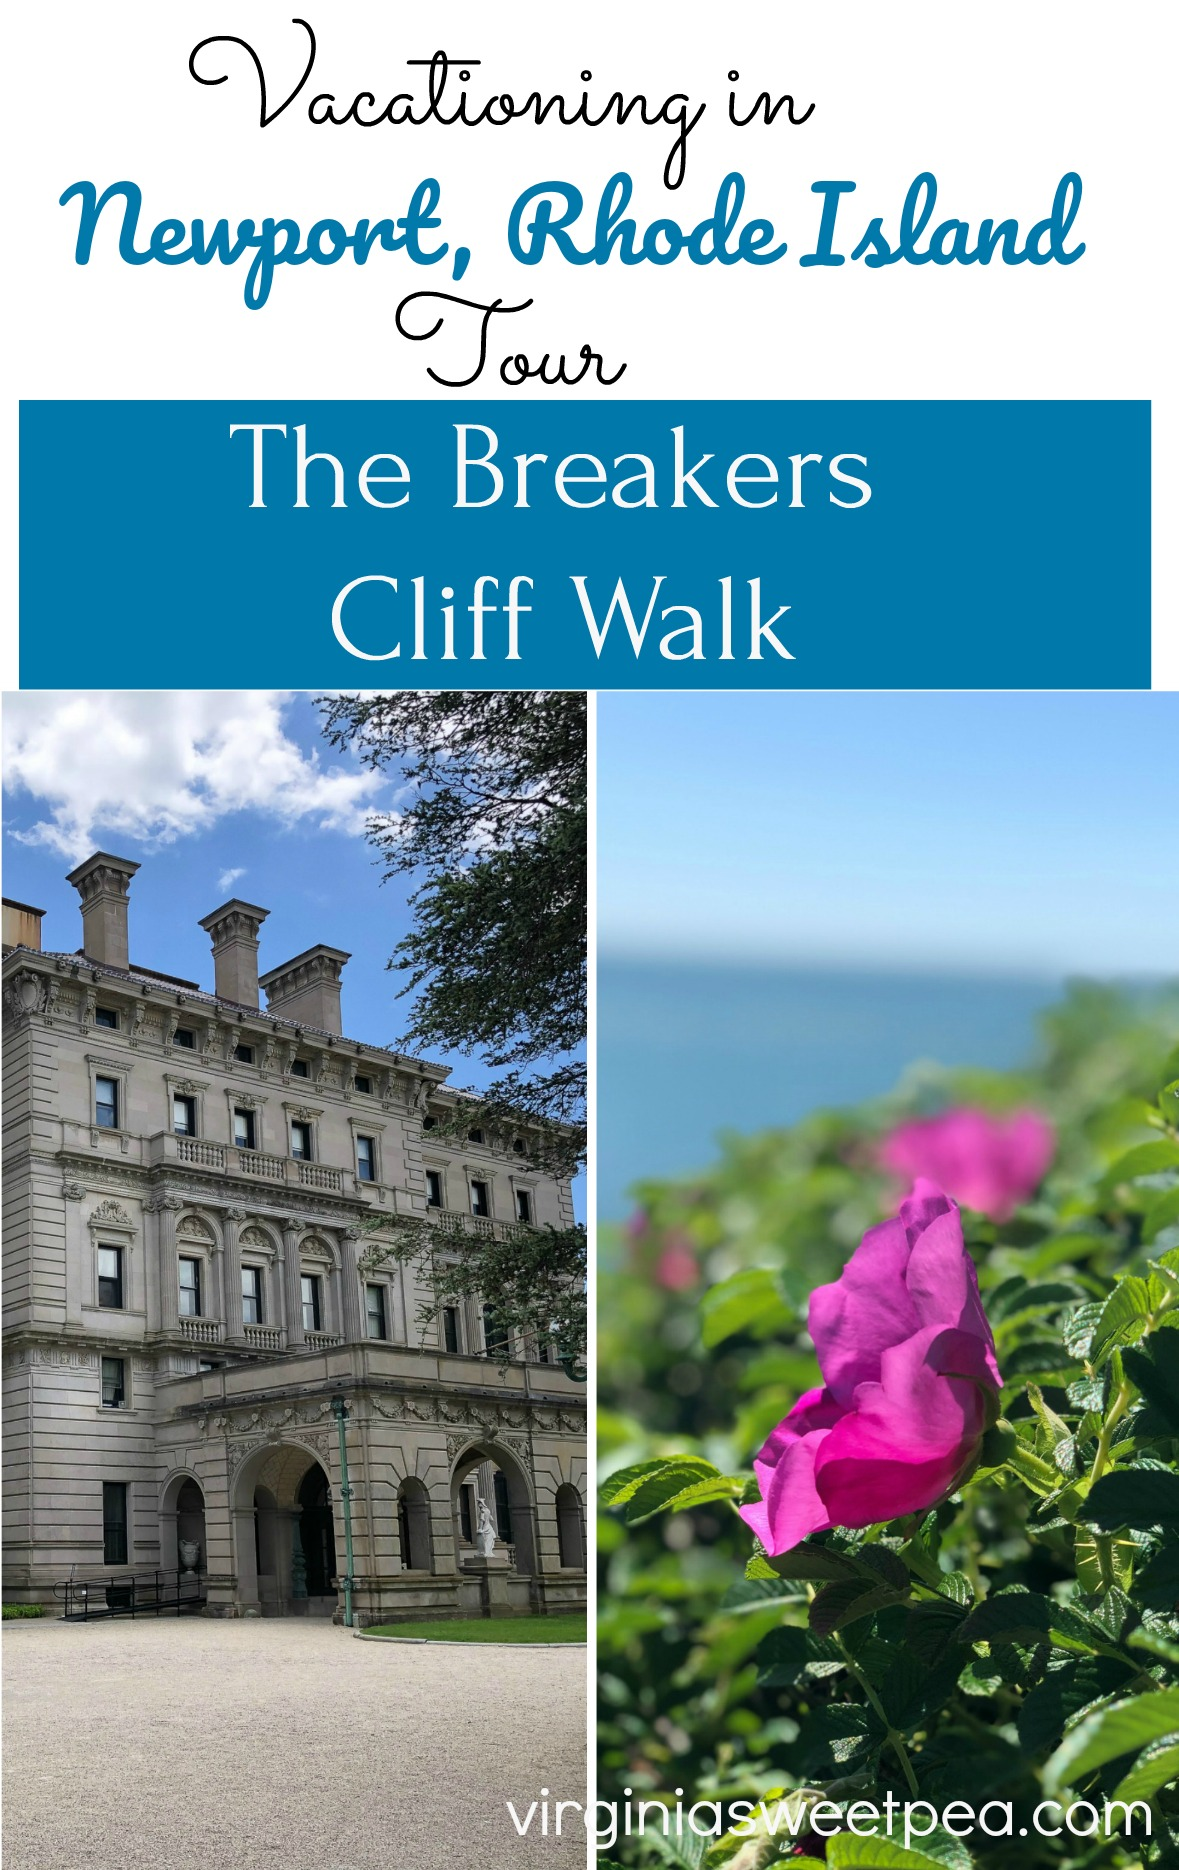 Tour The Breakers and See the Cliff Walk in Newport, RI